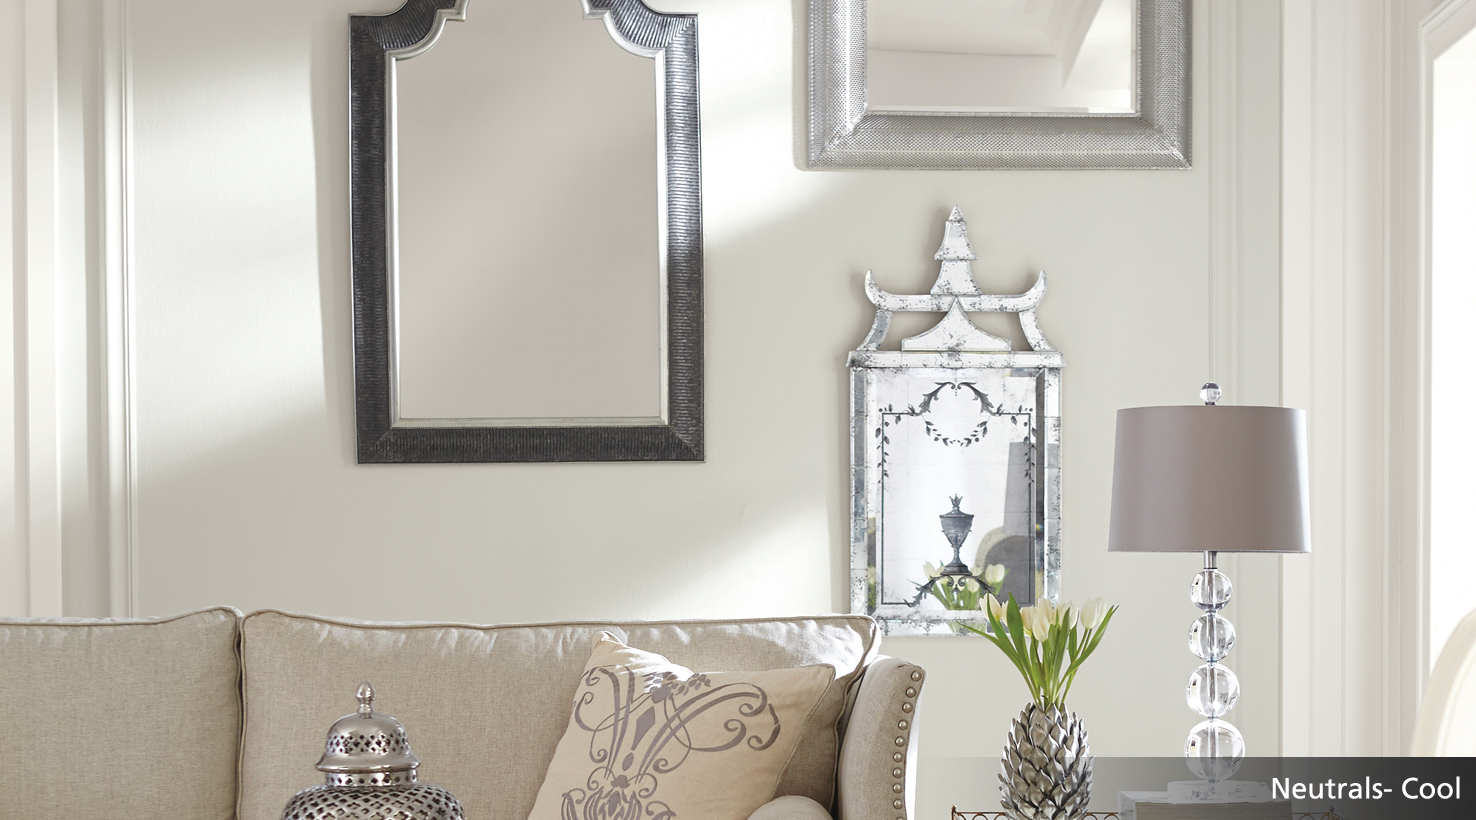 Cool Neutrals Postcard Room Scene